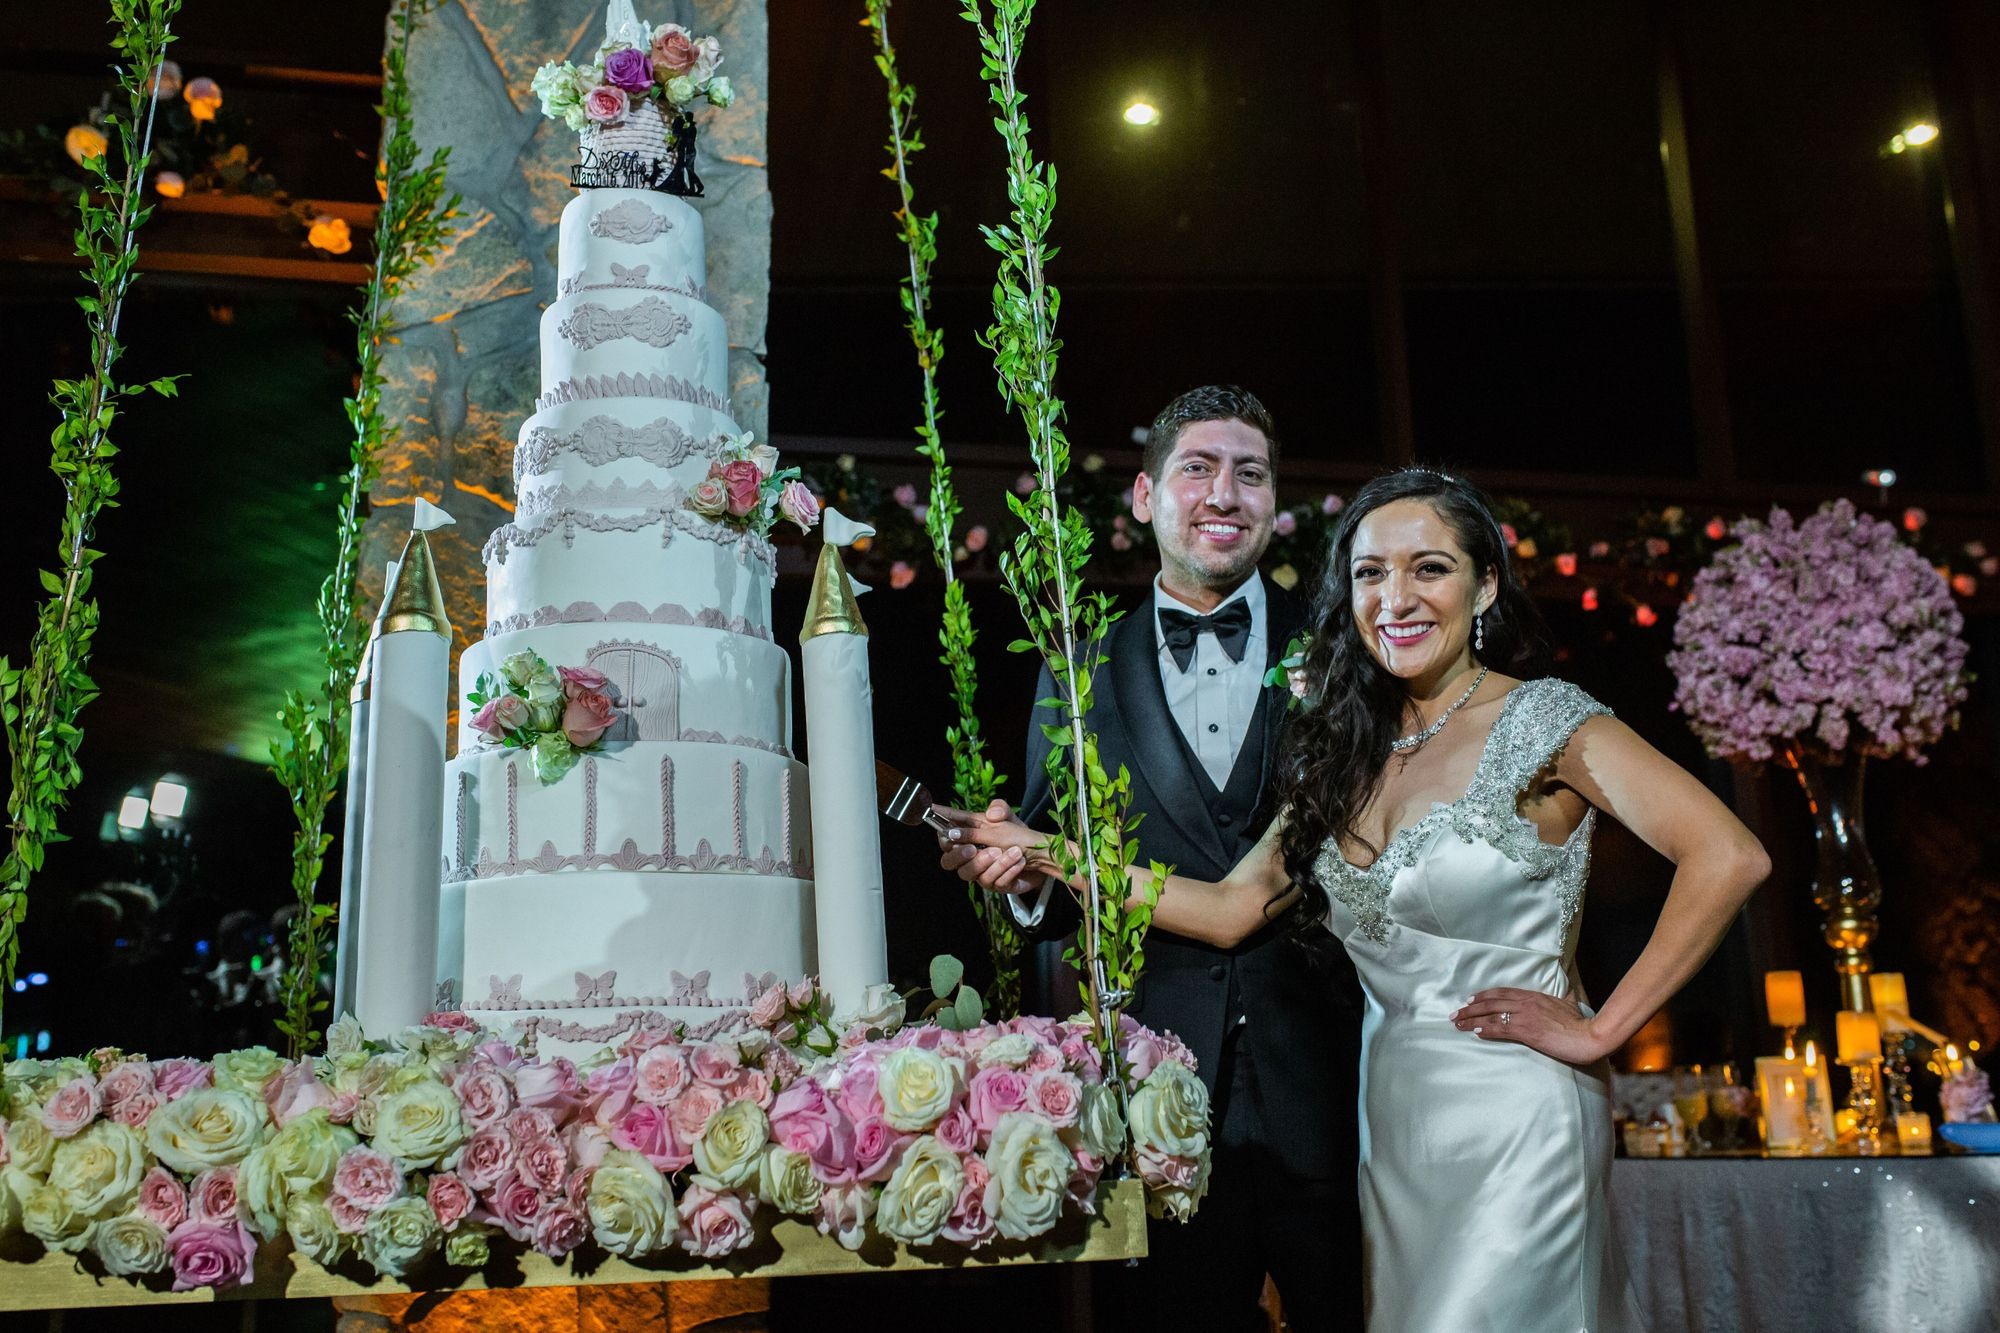 9 Tier Fairy Tale Themed Wedding Cake Hanging From The Ceiling At An At Home Reception In 2020 Disney Wedding Cake Disney Wedding Themed Wedding Cakes